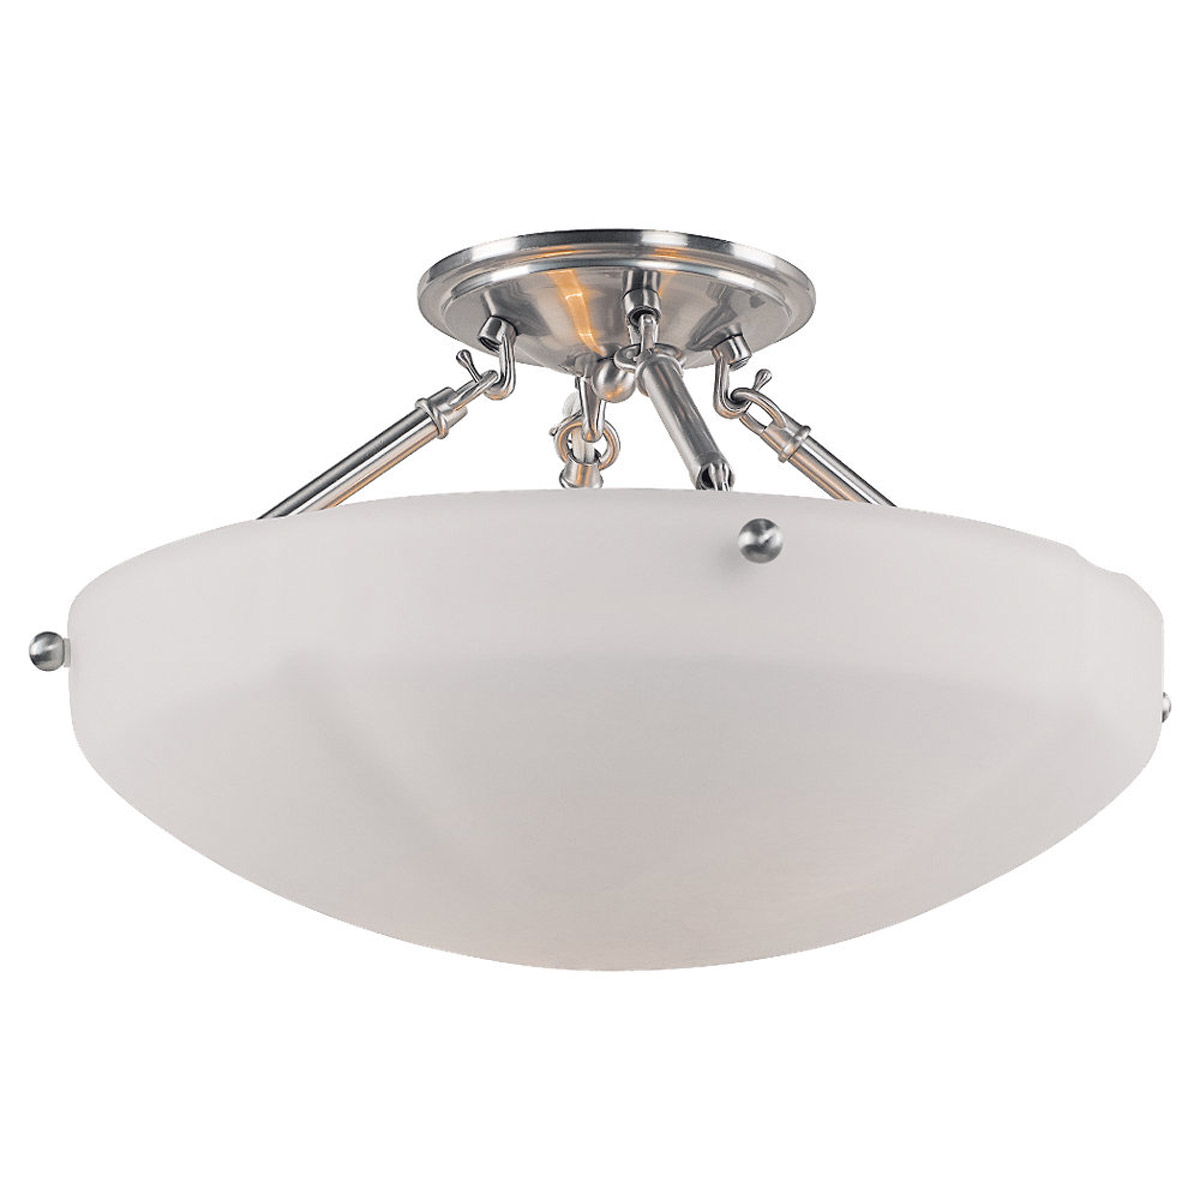 Sea Gull Lighting Century 2 Light Flush Mount in Brushed Nickel 77474-962 photo